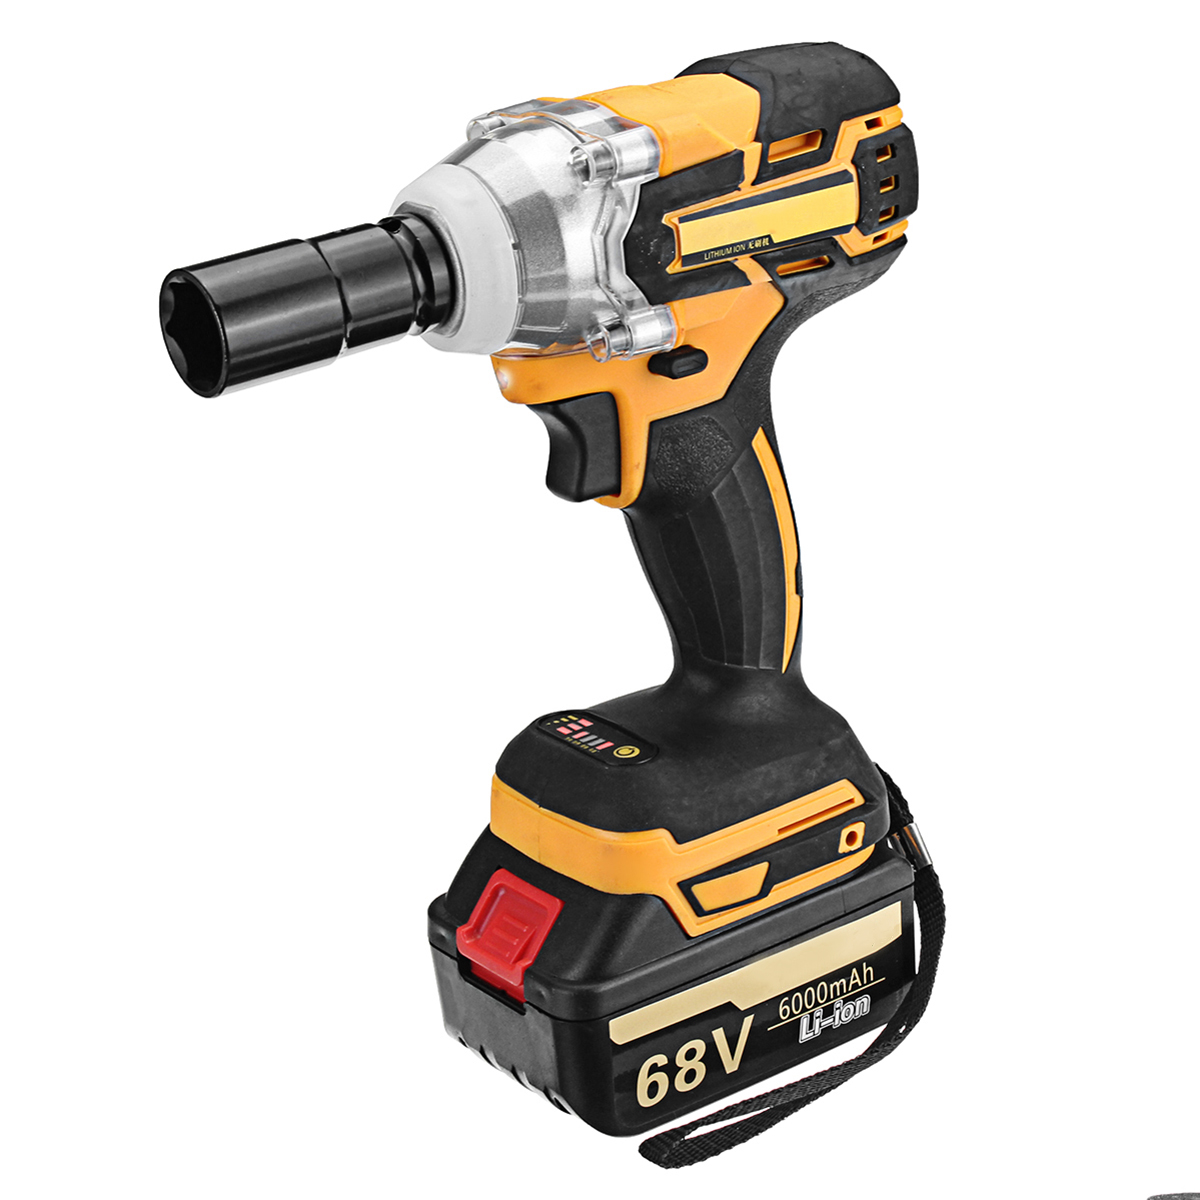 68V 6000mAh Electric Wrench 2 Batteries 1 Charger Brushless Cordless Drive Impact Wrench Tools